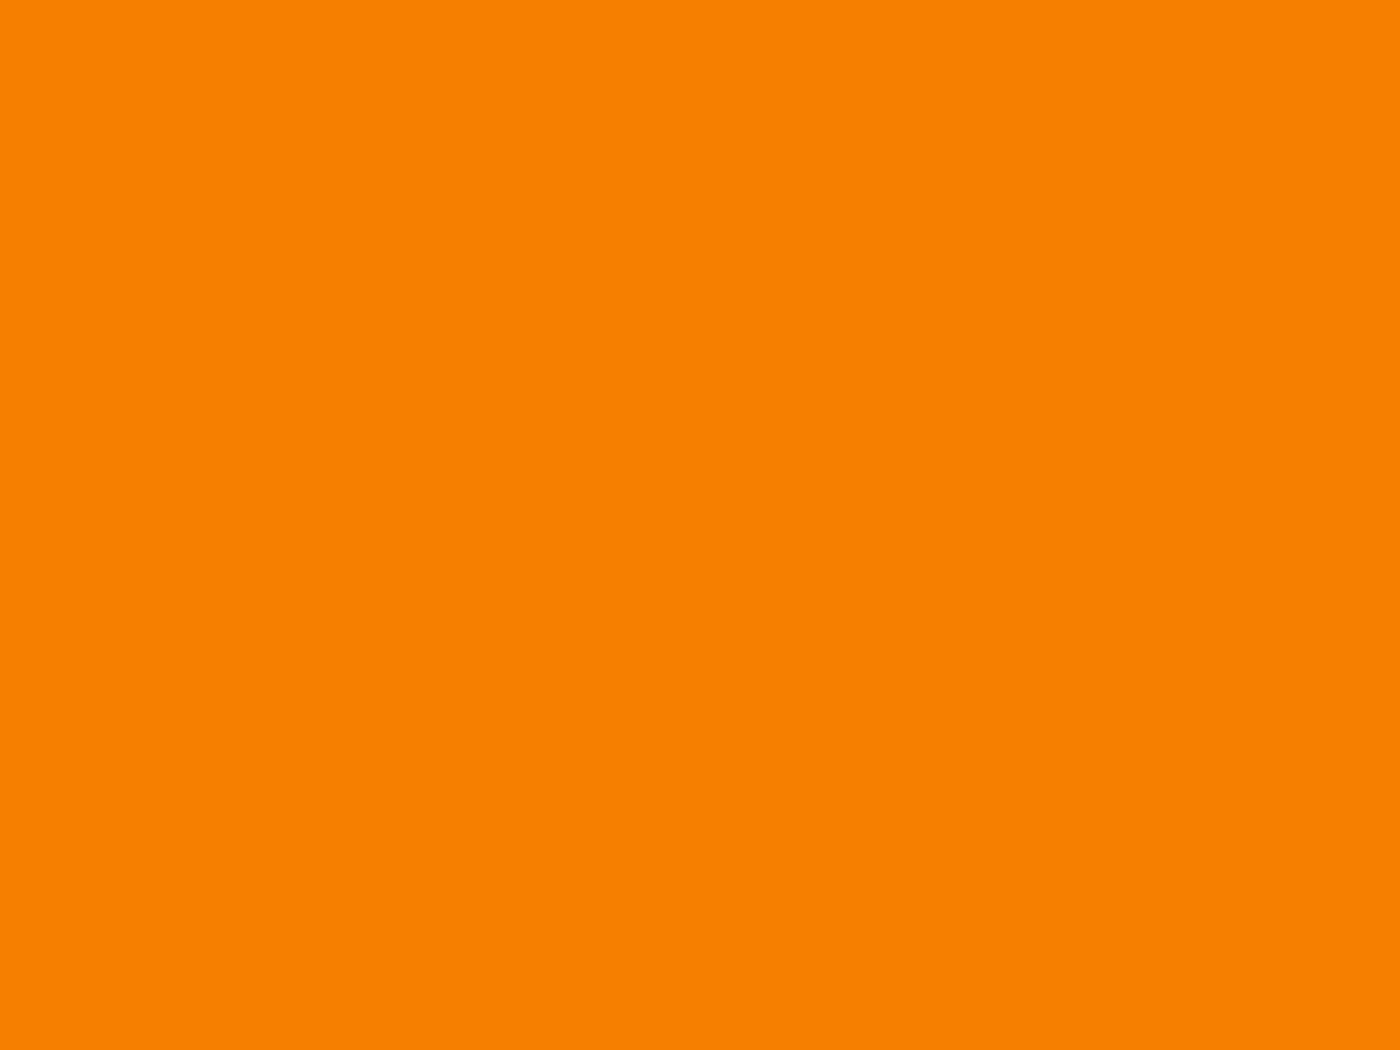 1400x1050 University Of Tennessee Orange Solid Color Background